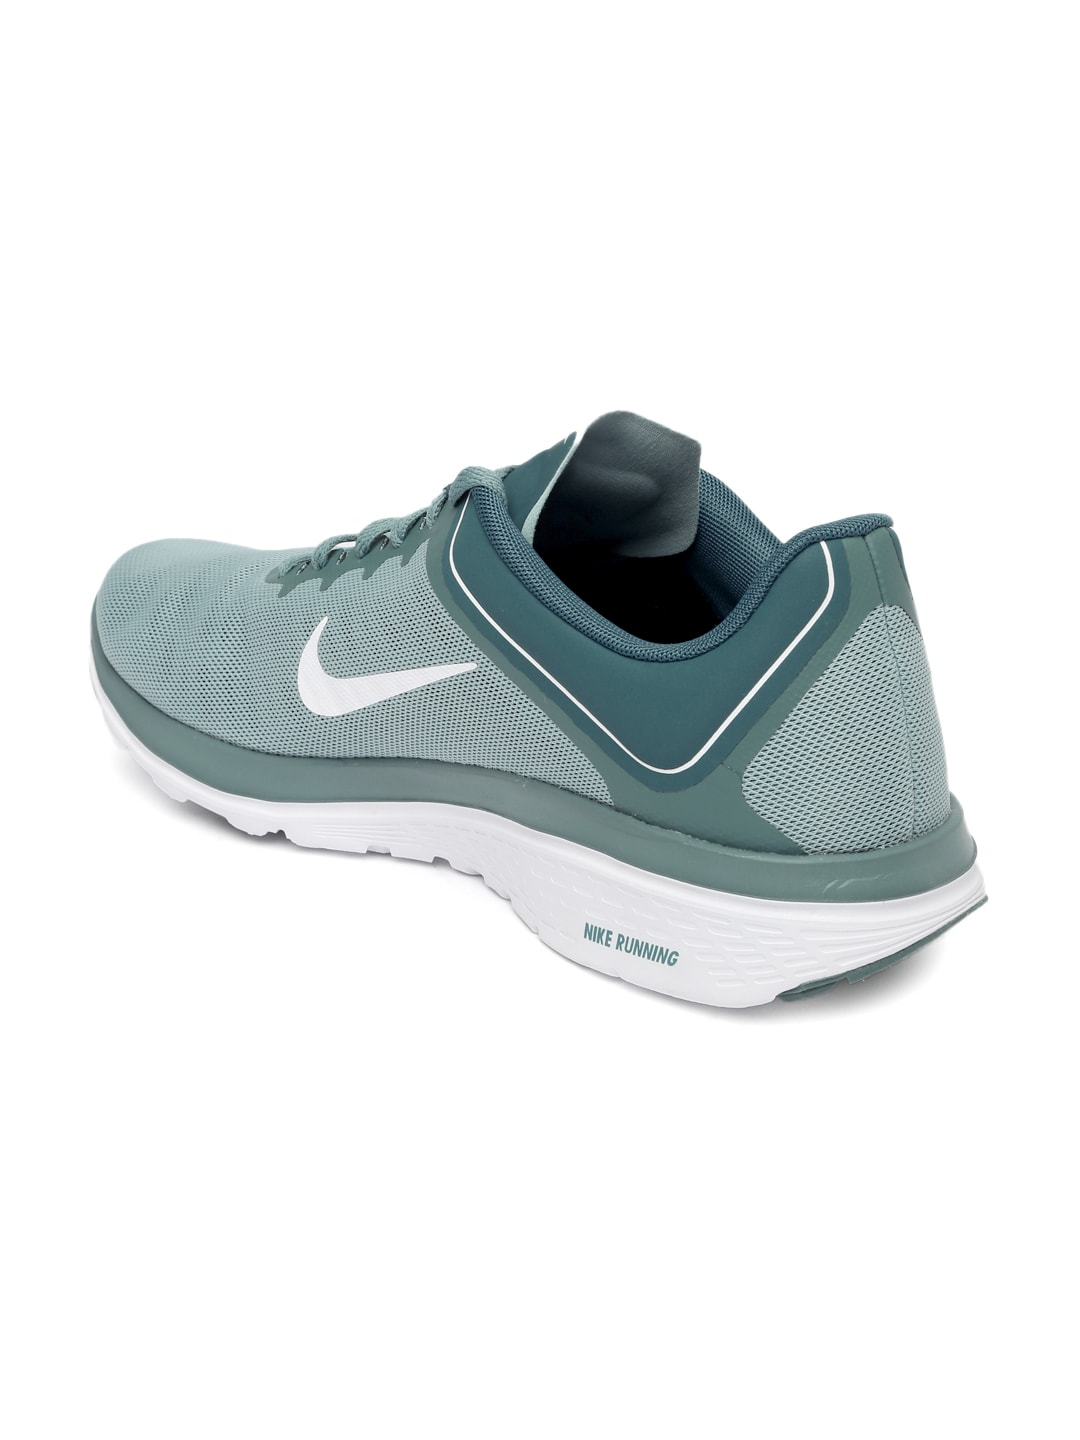 Cheap Nike Free Run Promotional Mix Provincial Court of British Columbia